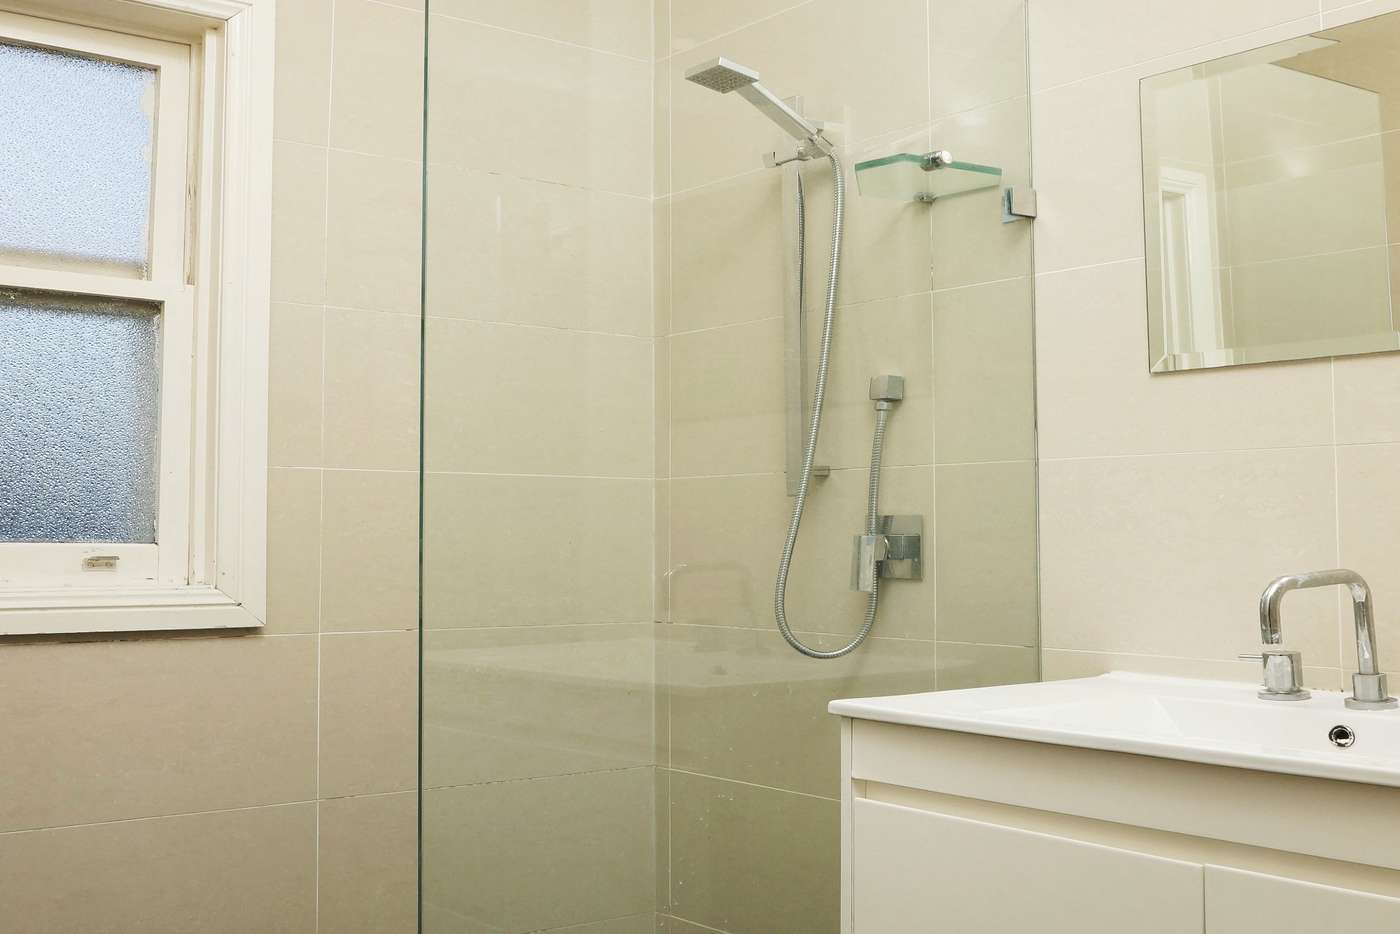 Fifth view of Homely house listing, 1 Carinya Ave, Beverly Hills NSW 2209